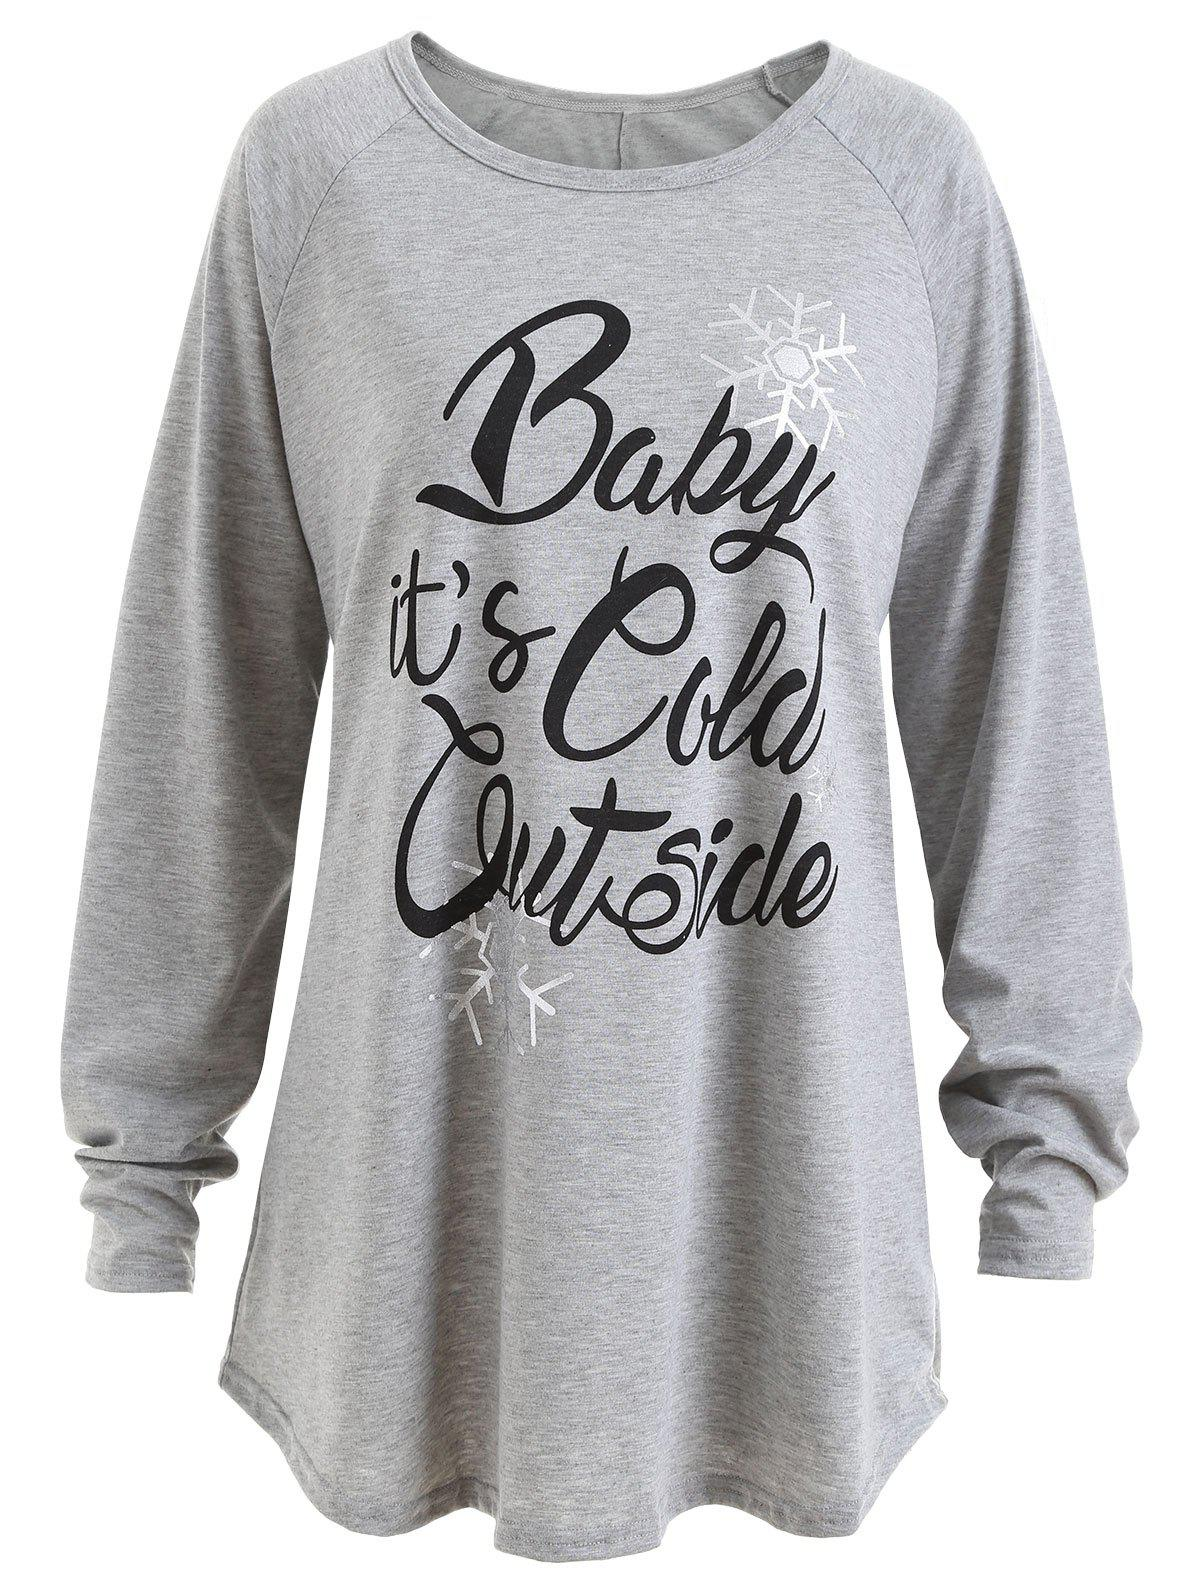 59 Off Plus Size Baby Its Cold Outside Letter Christmas